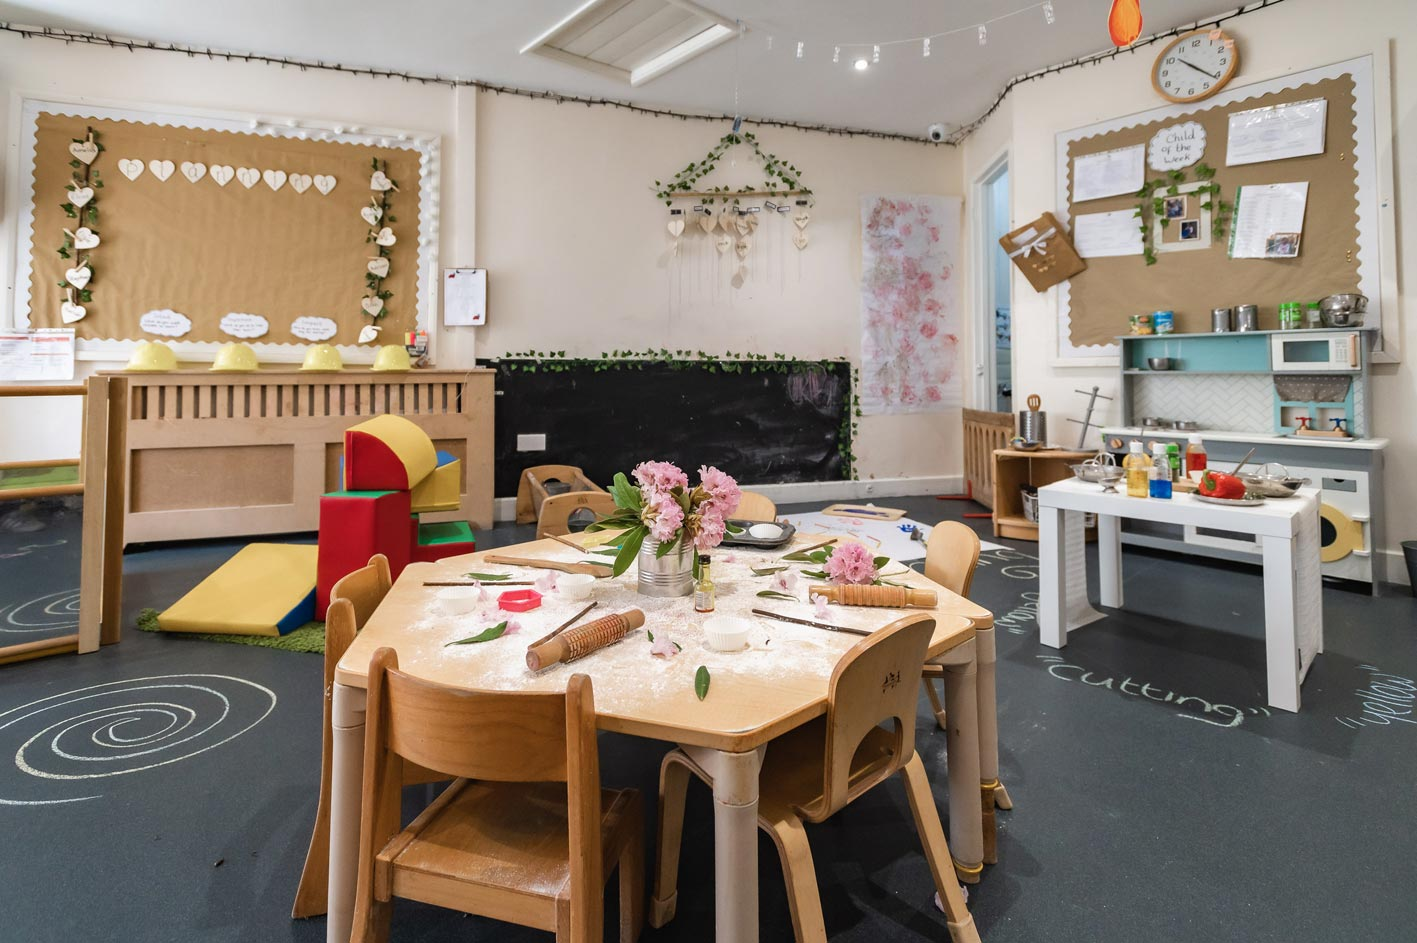 Some of the creative equipment that children can enjoy indoors.